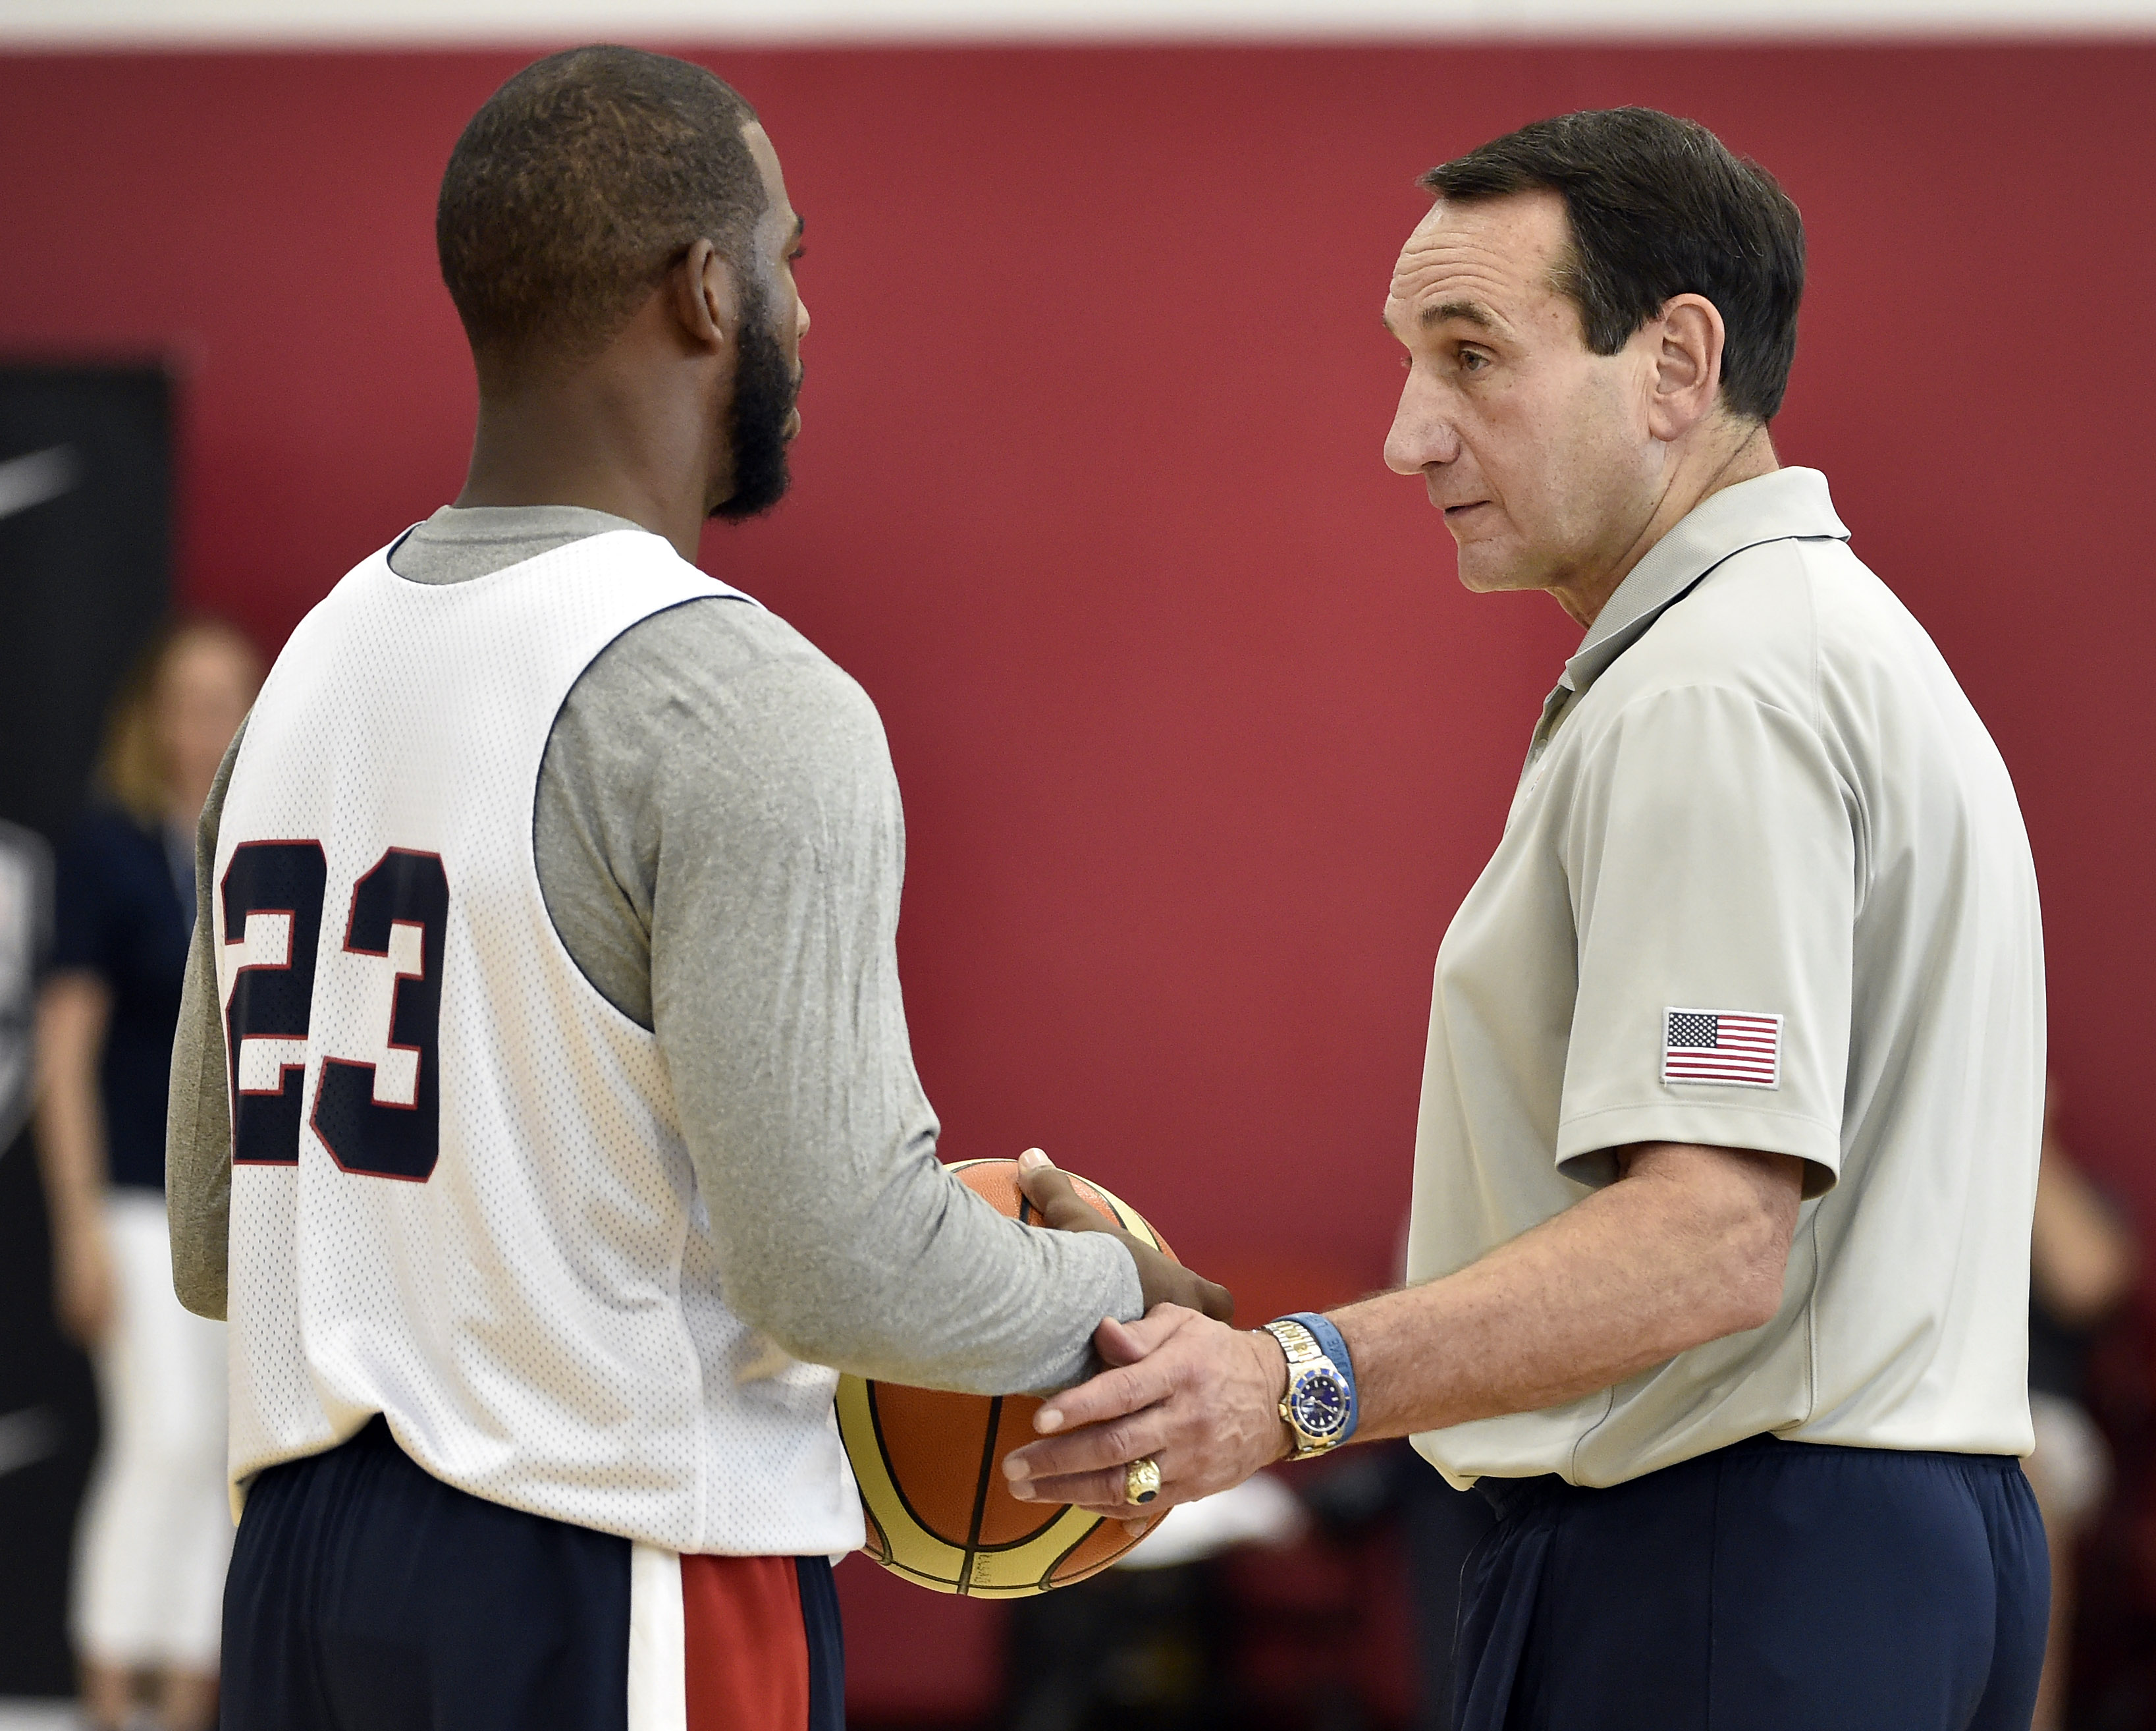 U.S men's basketball coach Mike Krzyzewski, right, speaks with Chris Paul during the team's minicamp Tuesday, Aug. 11, 2015, in Las Vegas. (AP Photo/David Becker)